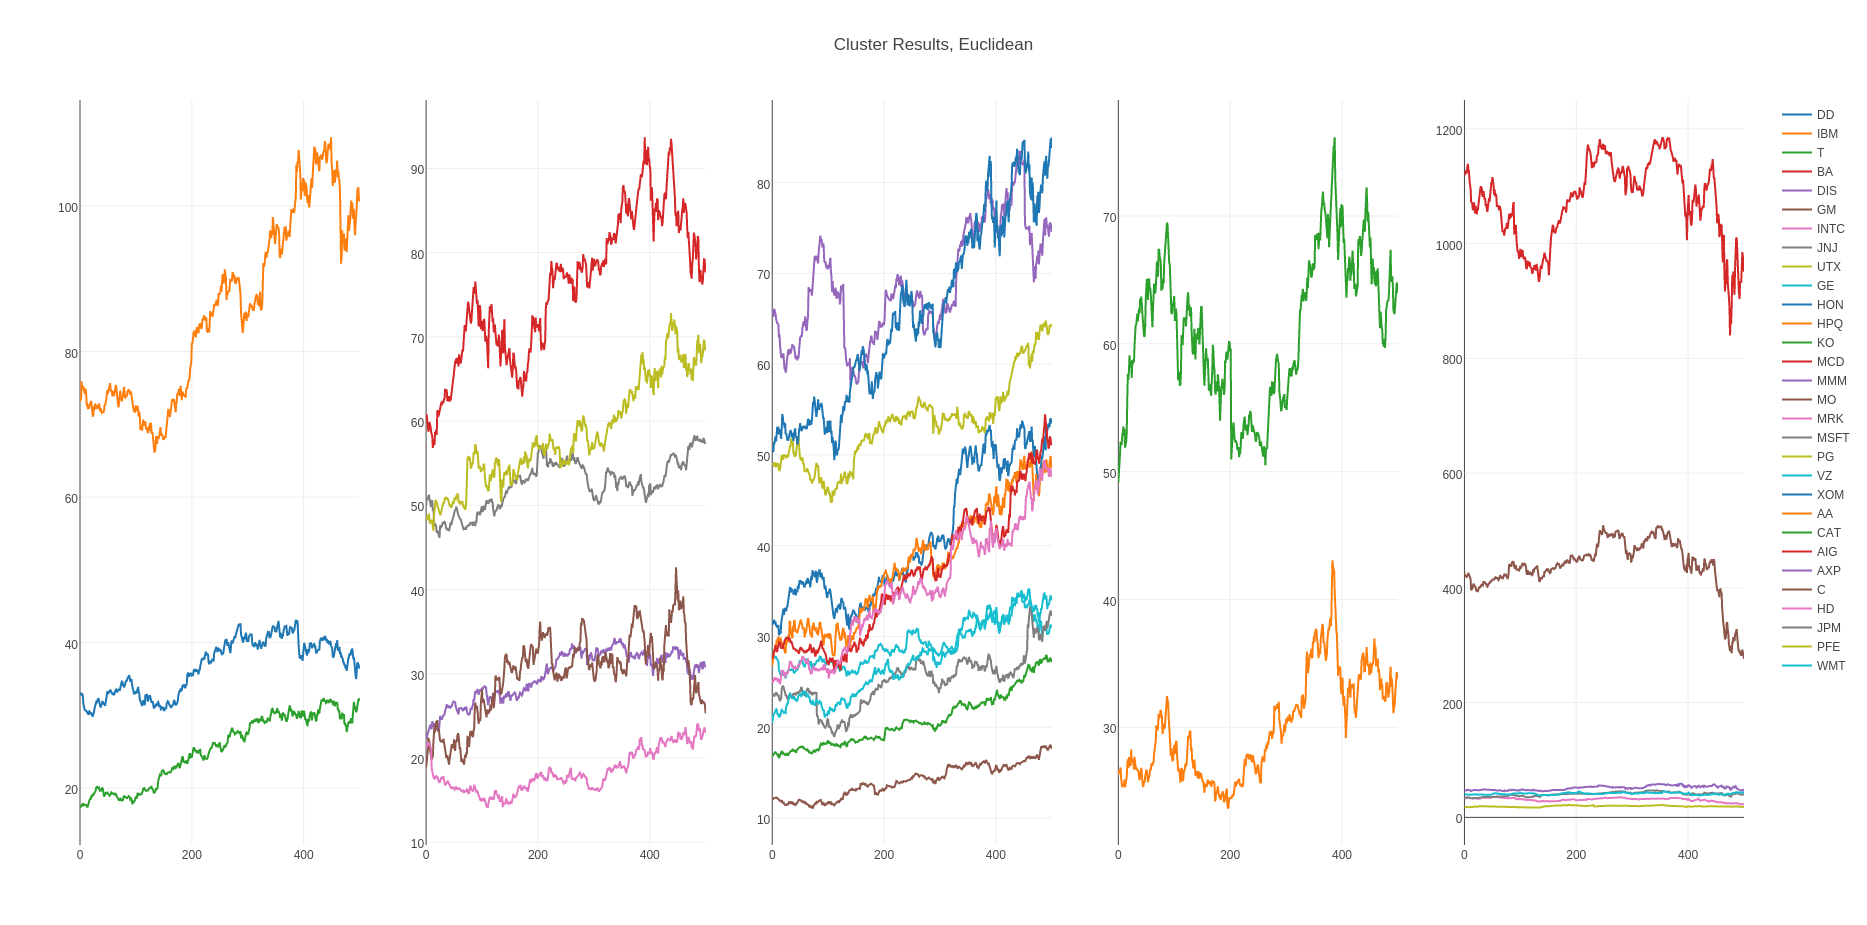 Finding Underlying Trends and Clustering of Time Series with